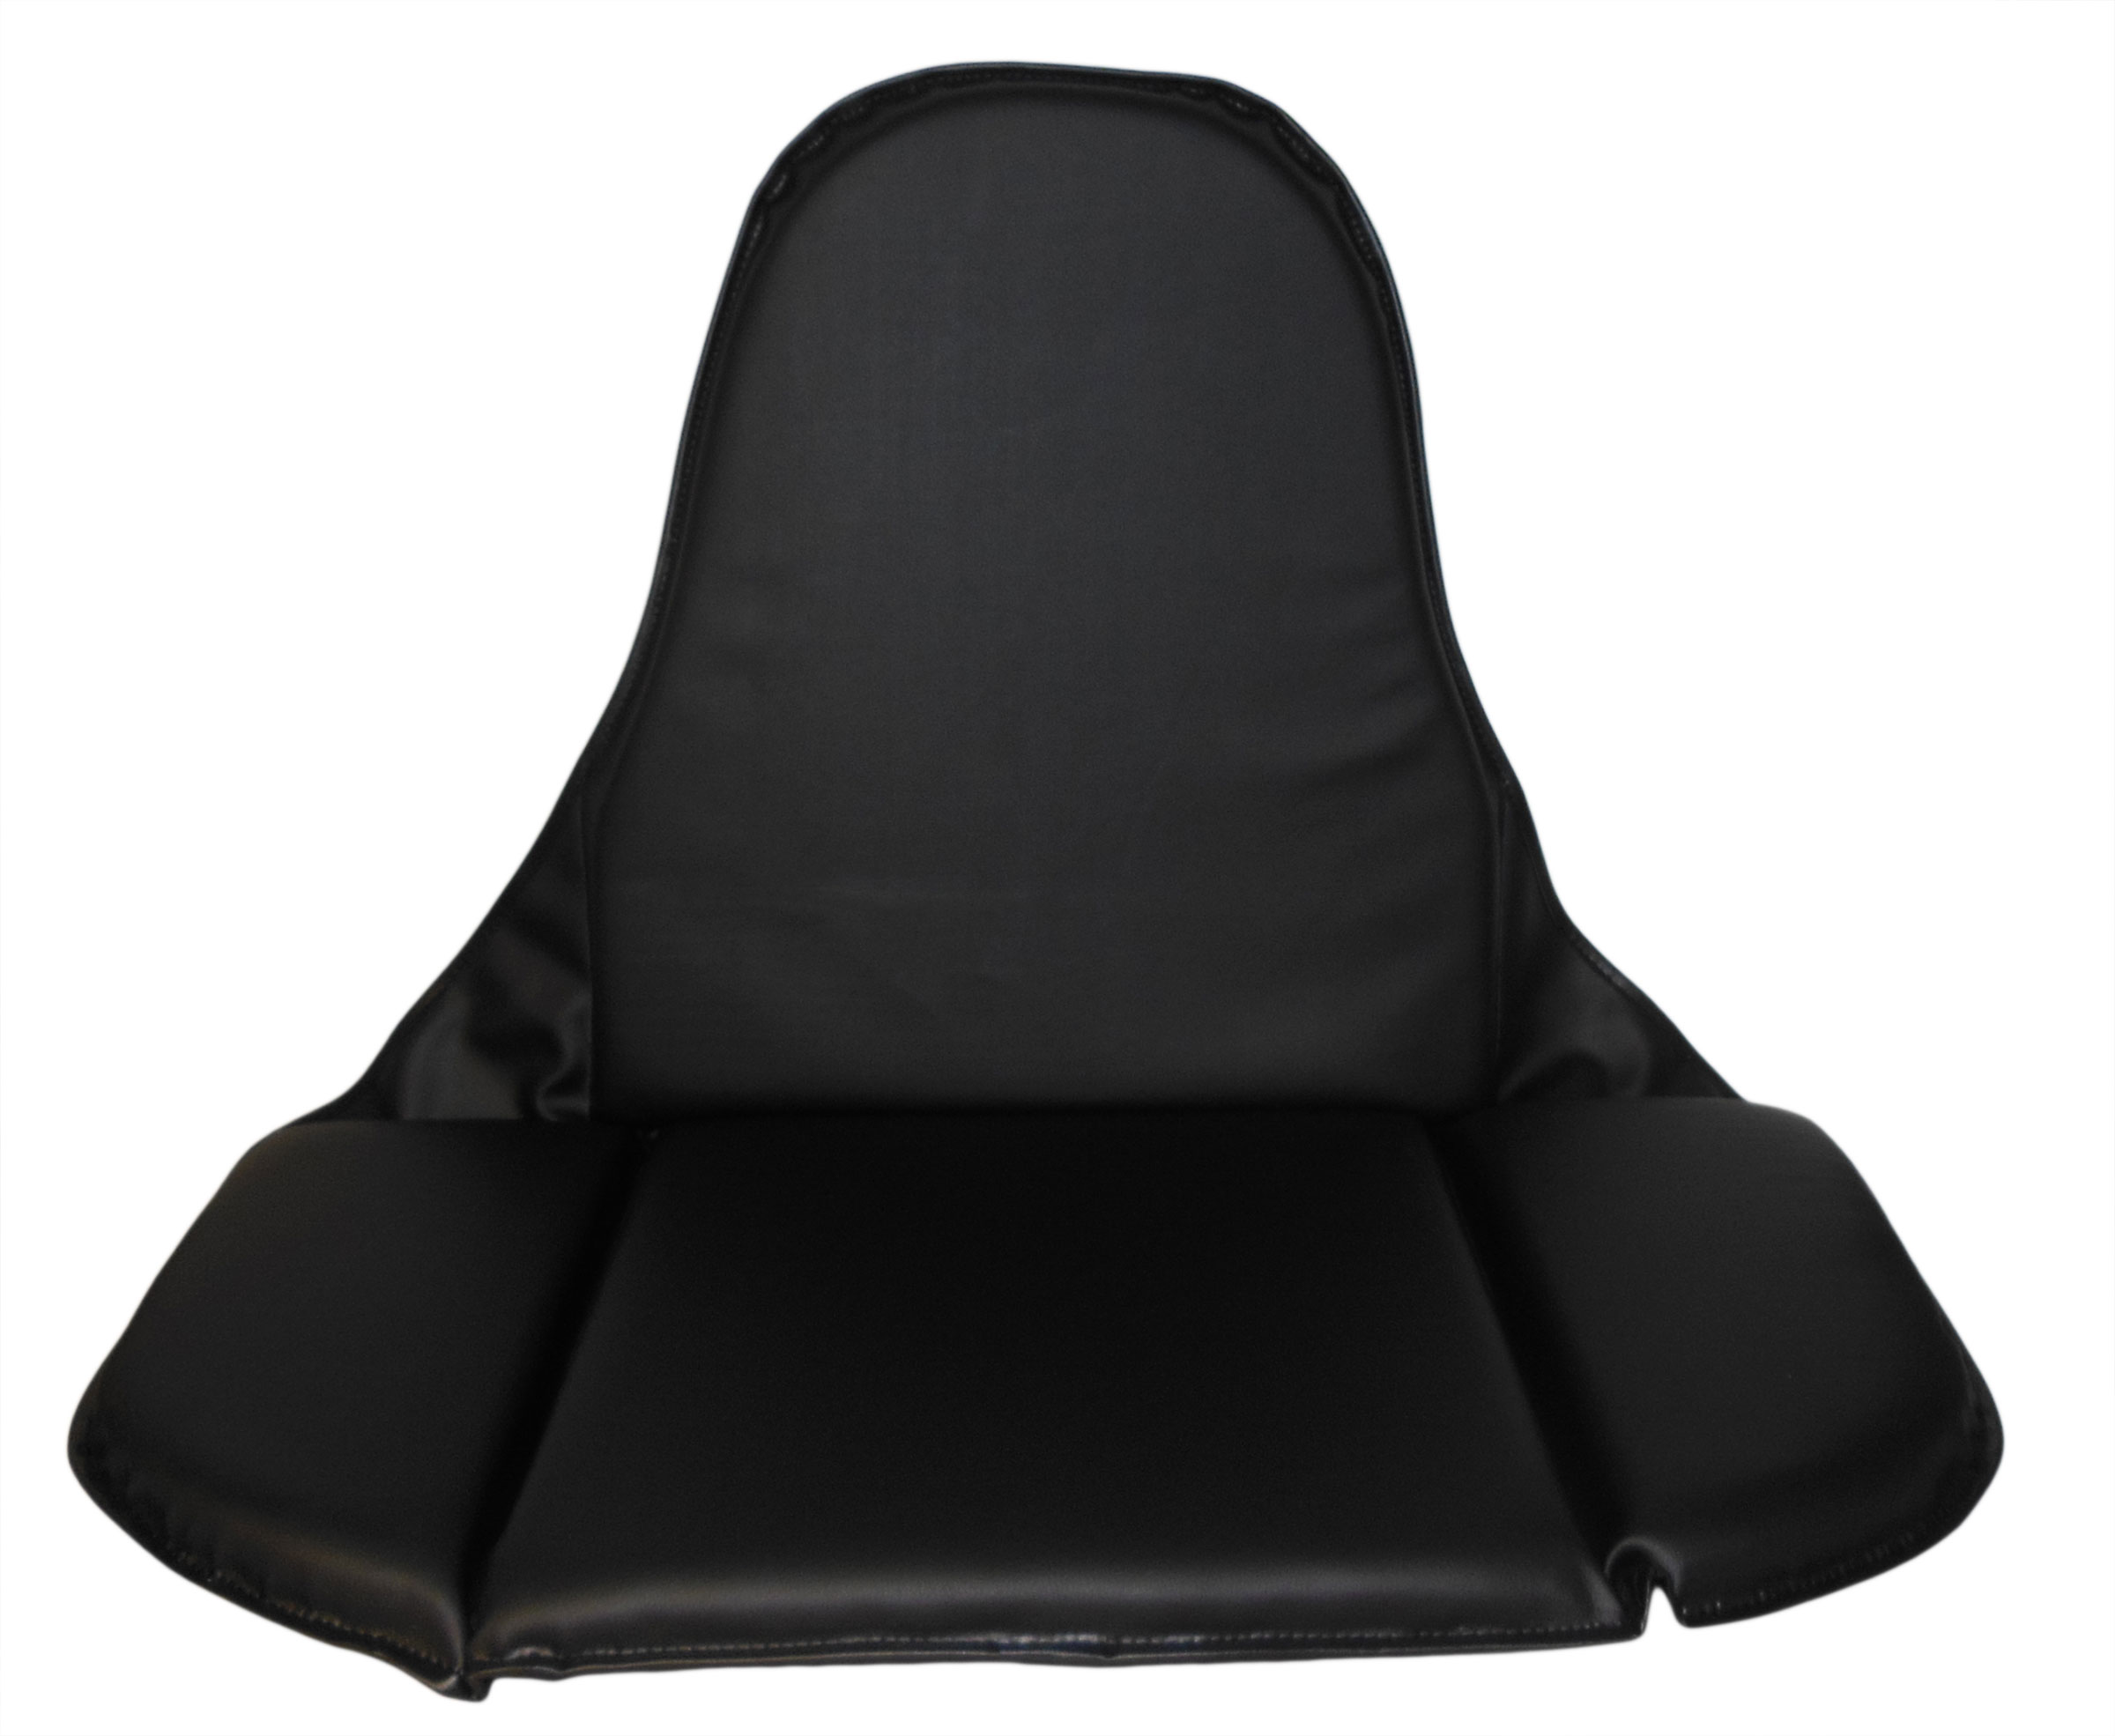 Carter Go Kart Seat Cover